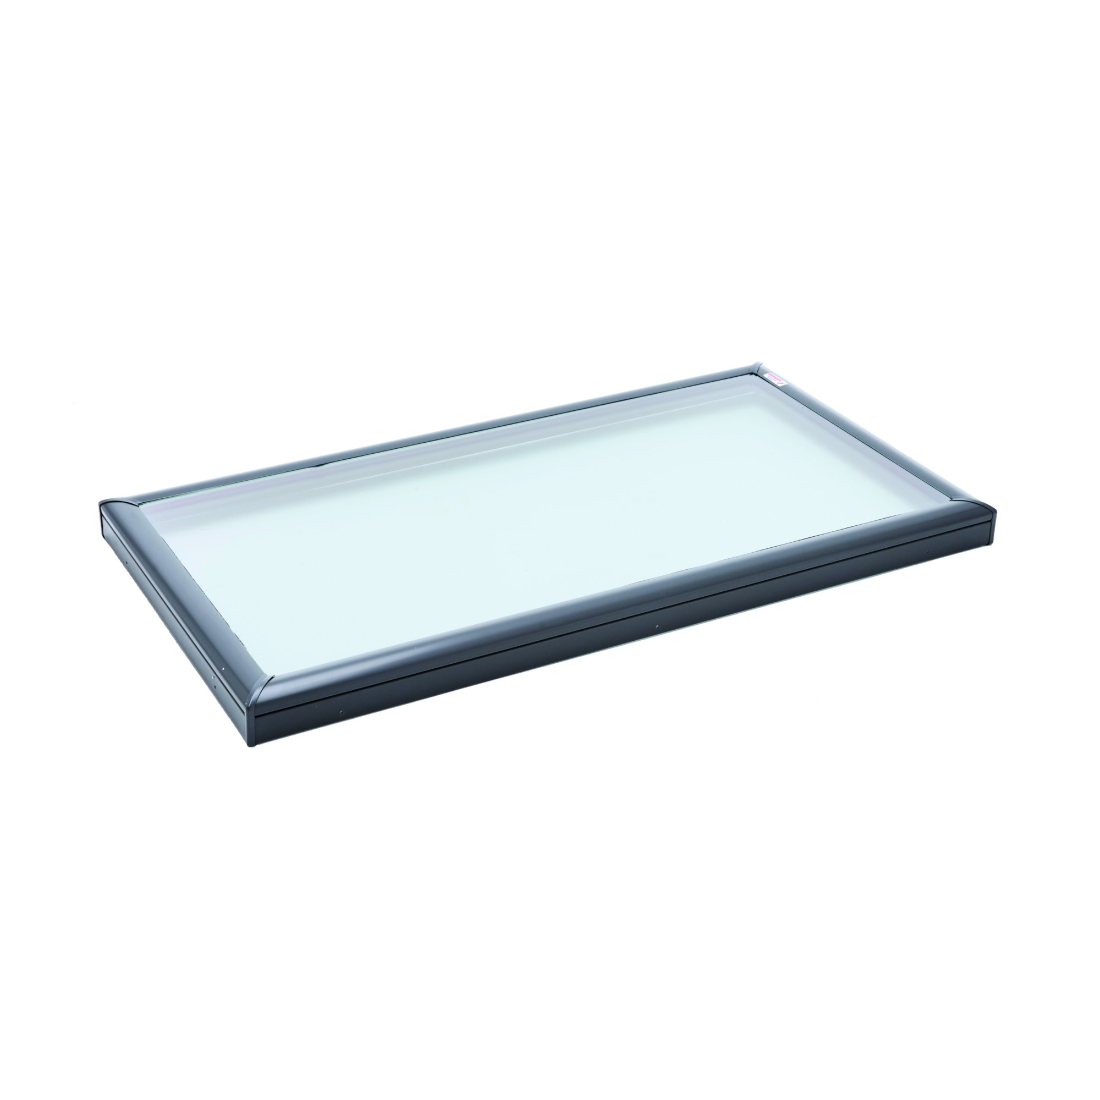 Low Pitch Fixed Skylight 692 x 1302mm